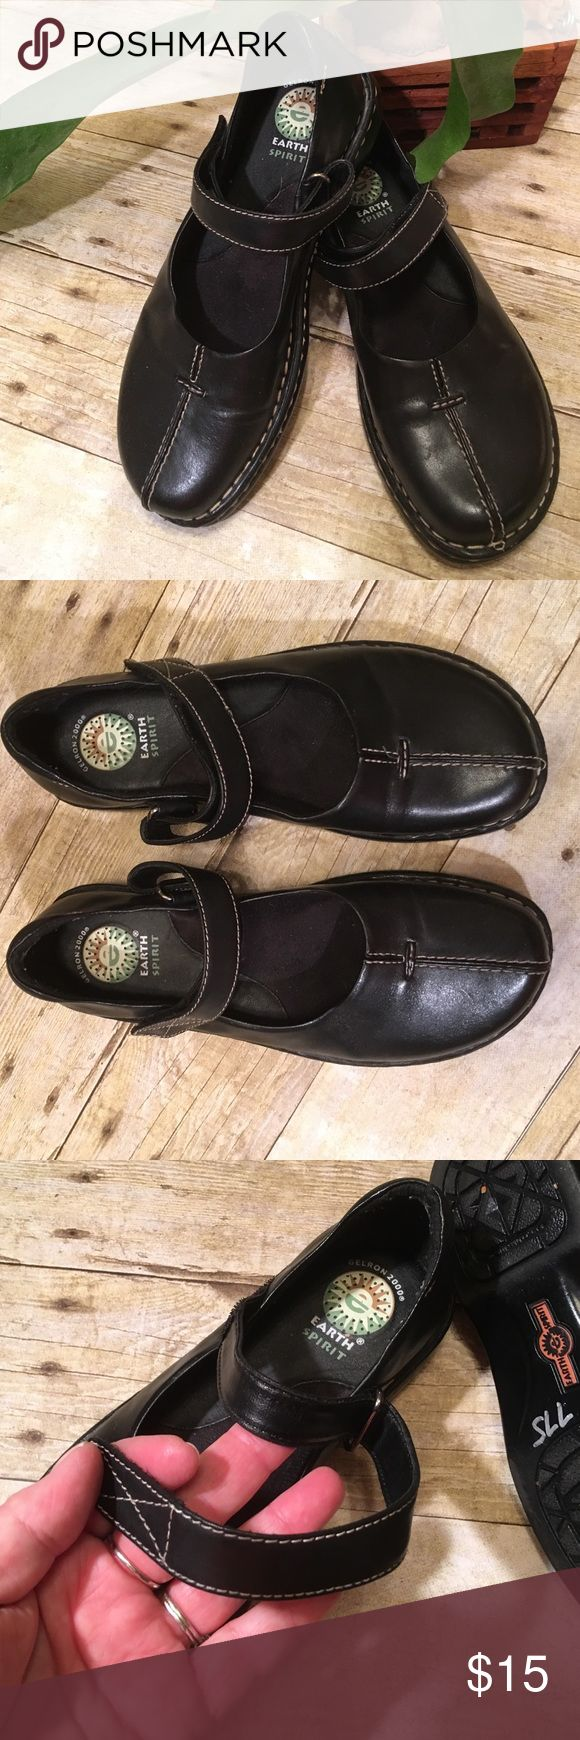 👀Mary Janes by Earth Shoes👀Leather Uppers USA Such a cute, classic style. They have Velcro adjustable straps. Cushioned instep. Excellent condition. Non smoking home Earth Shoes Shoes